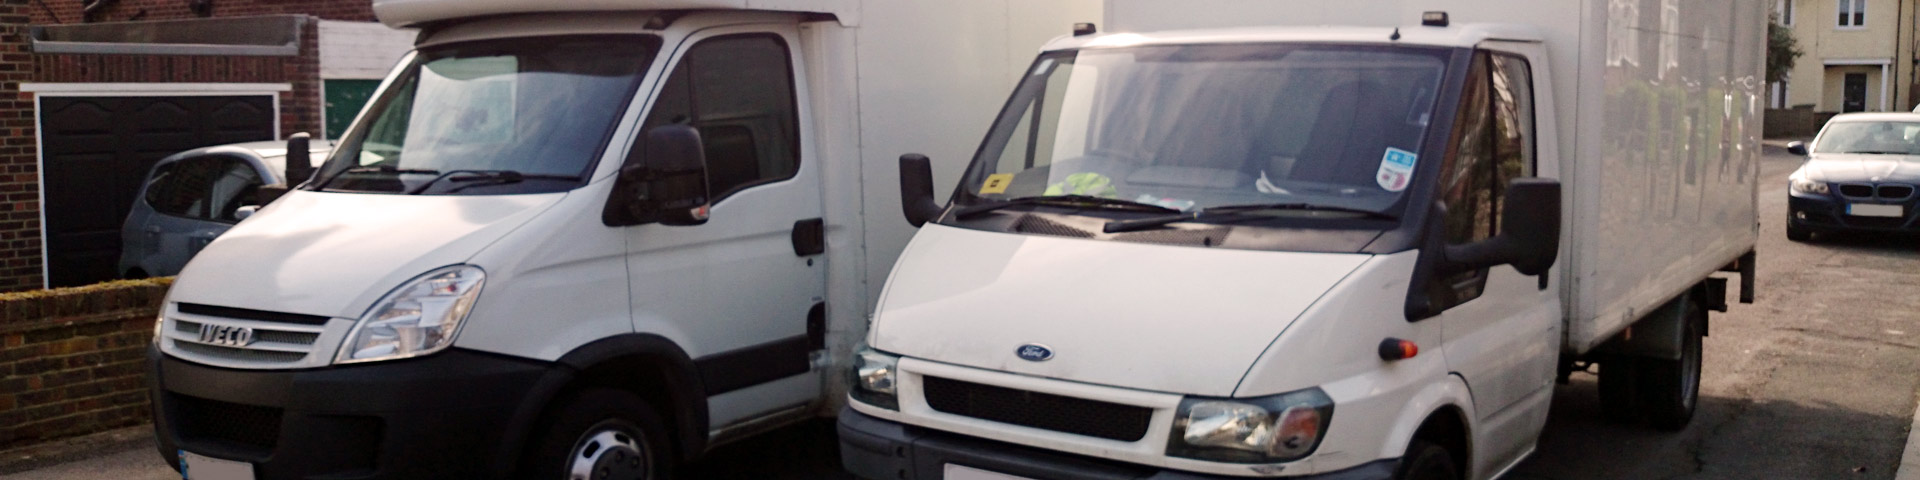 SOS - Sledges of Southampton - Van and Man services and Removals